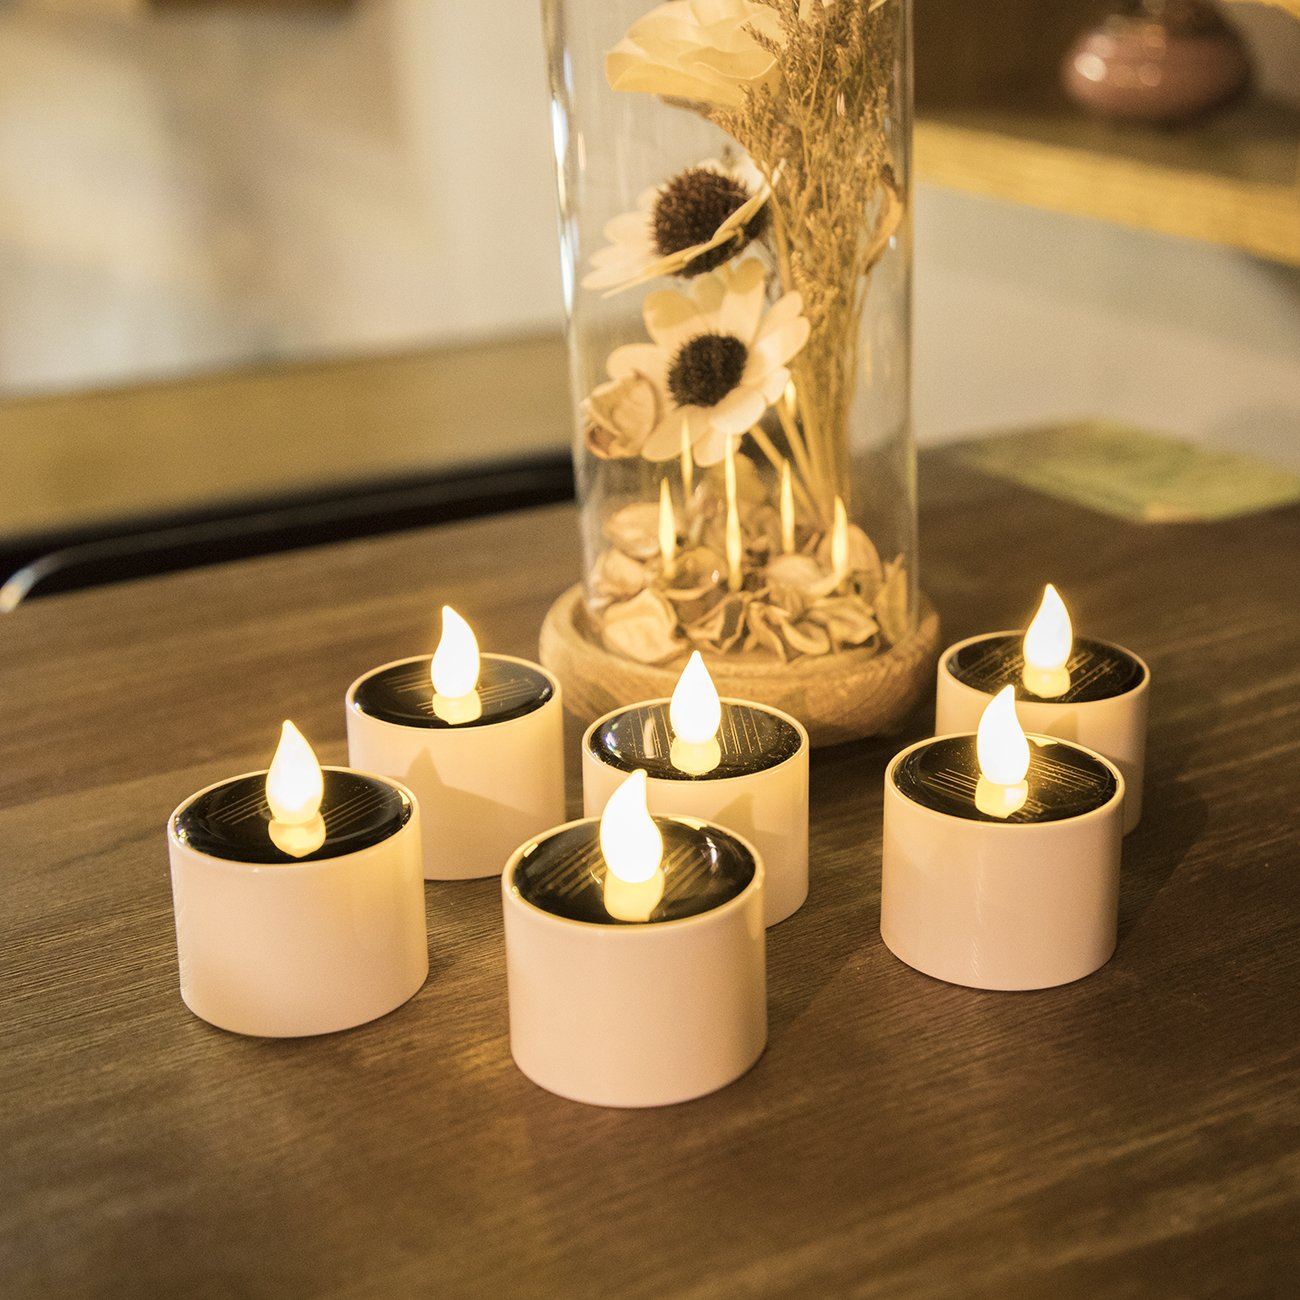 Solar Candles Flameless Rechargeable Candles LED Tea Lights Candles Battery Operated Upgraded Solar Power Waterproof Warm White Candle Set of 6 for Home Bar Bedroom Living Room Garden Outdoor Indoor by EXPOWER (Image #5)